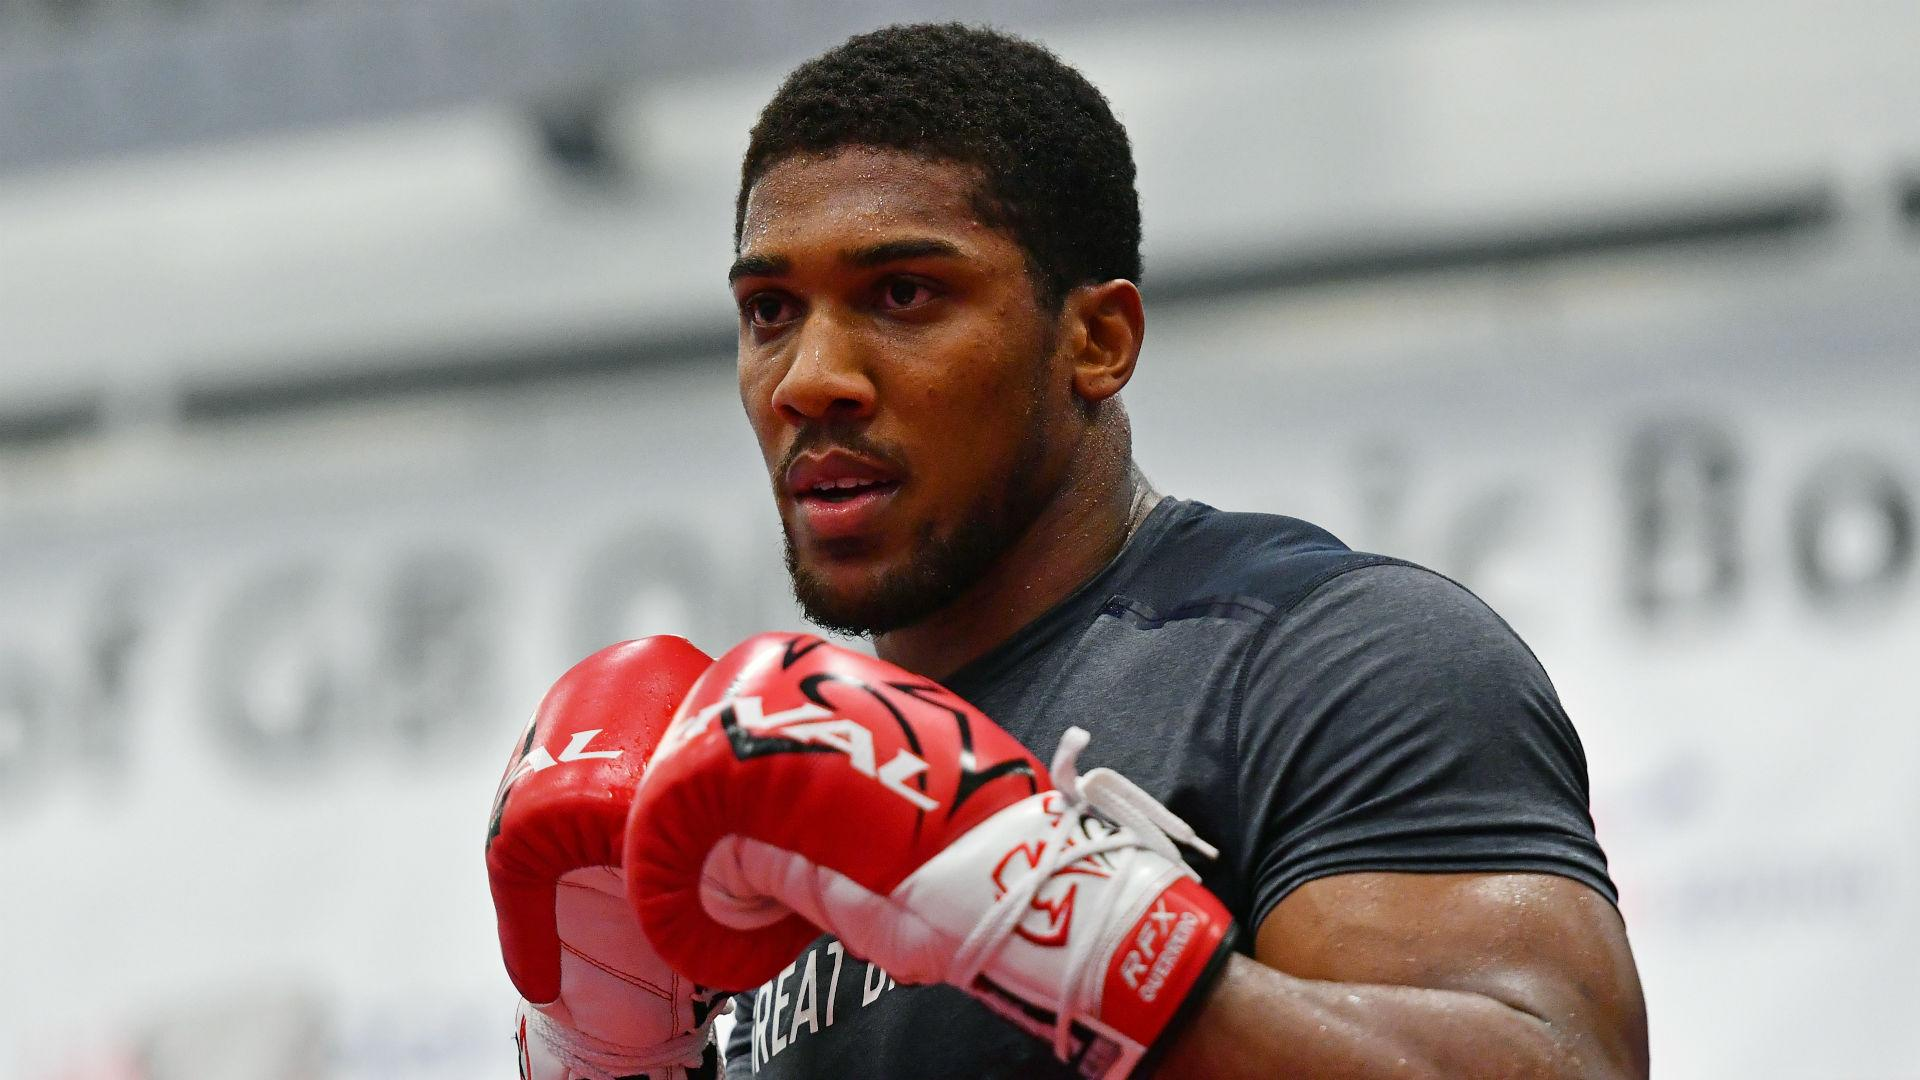 Anthony Joshua has risen from council estate troublemaker to world heavyweight champion in just a few short years